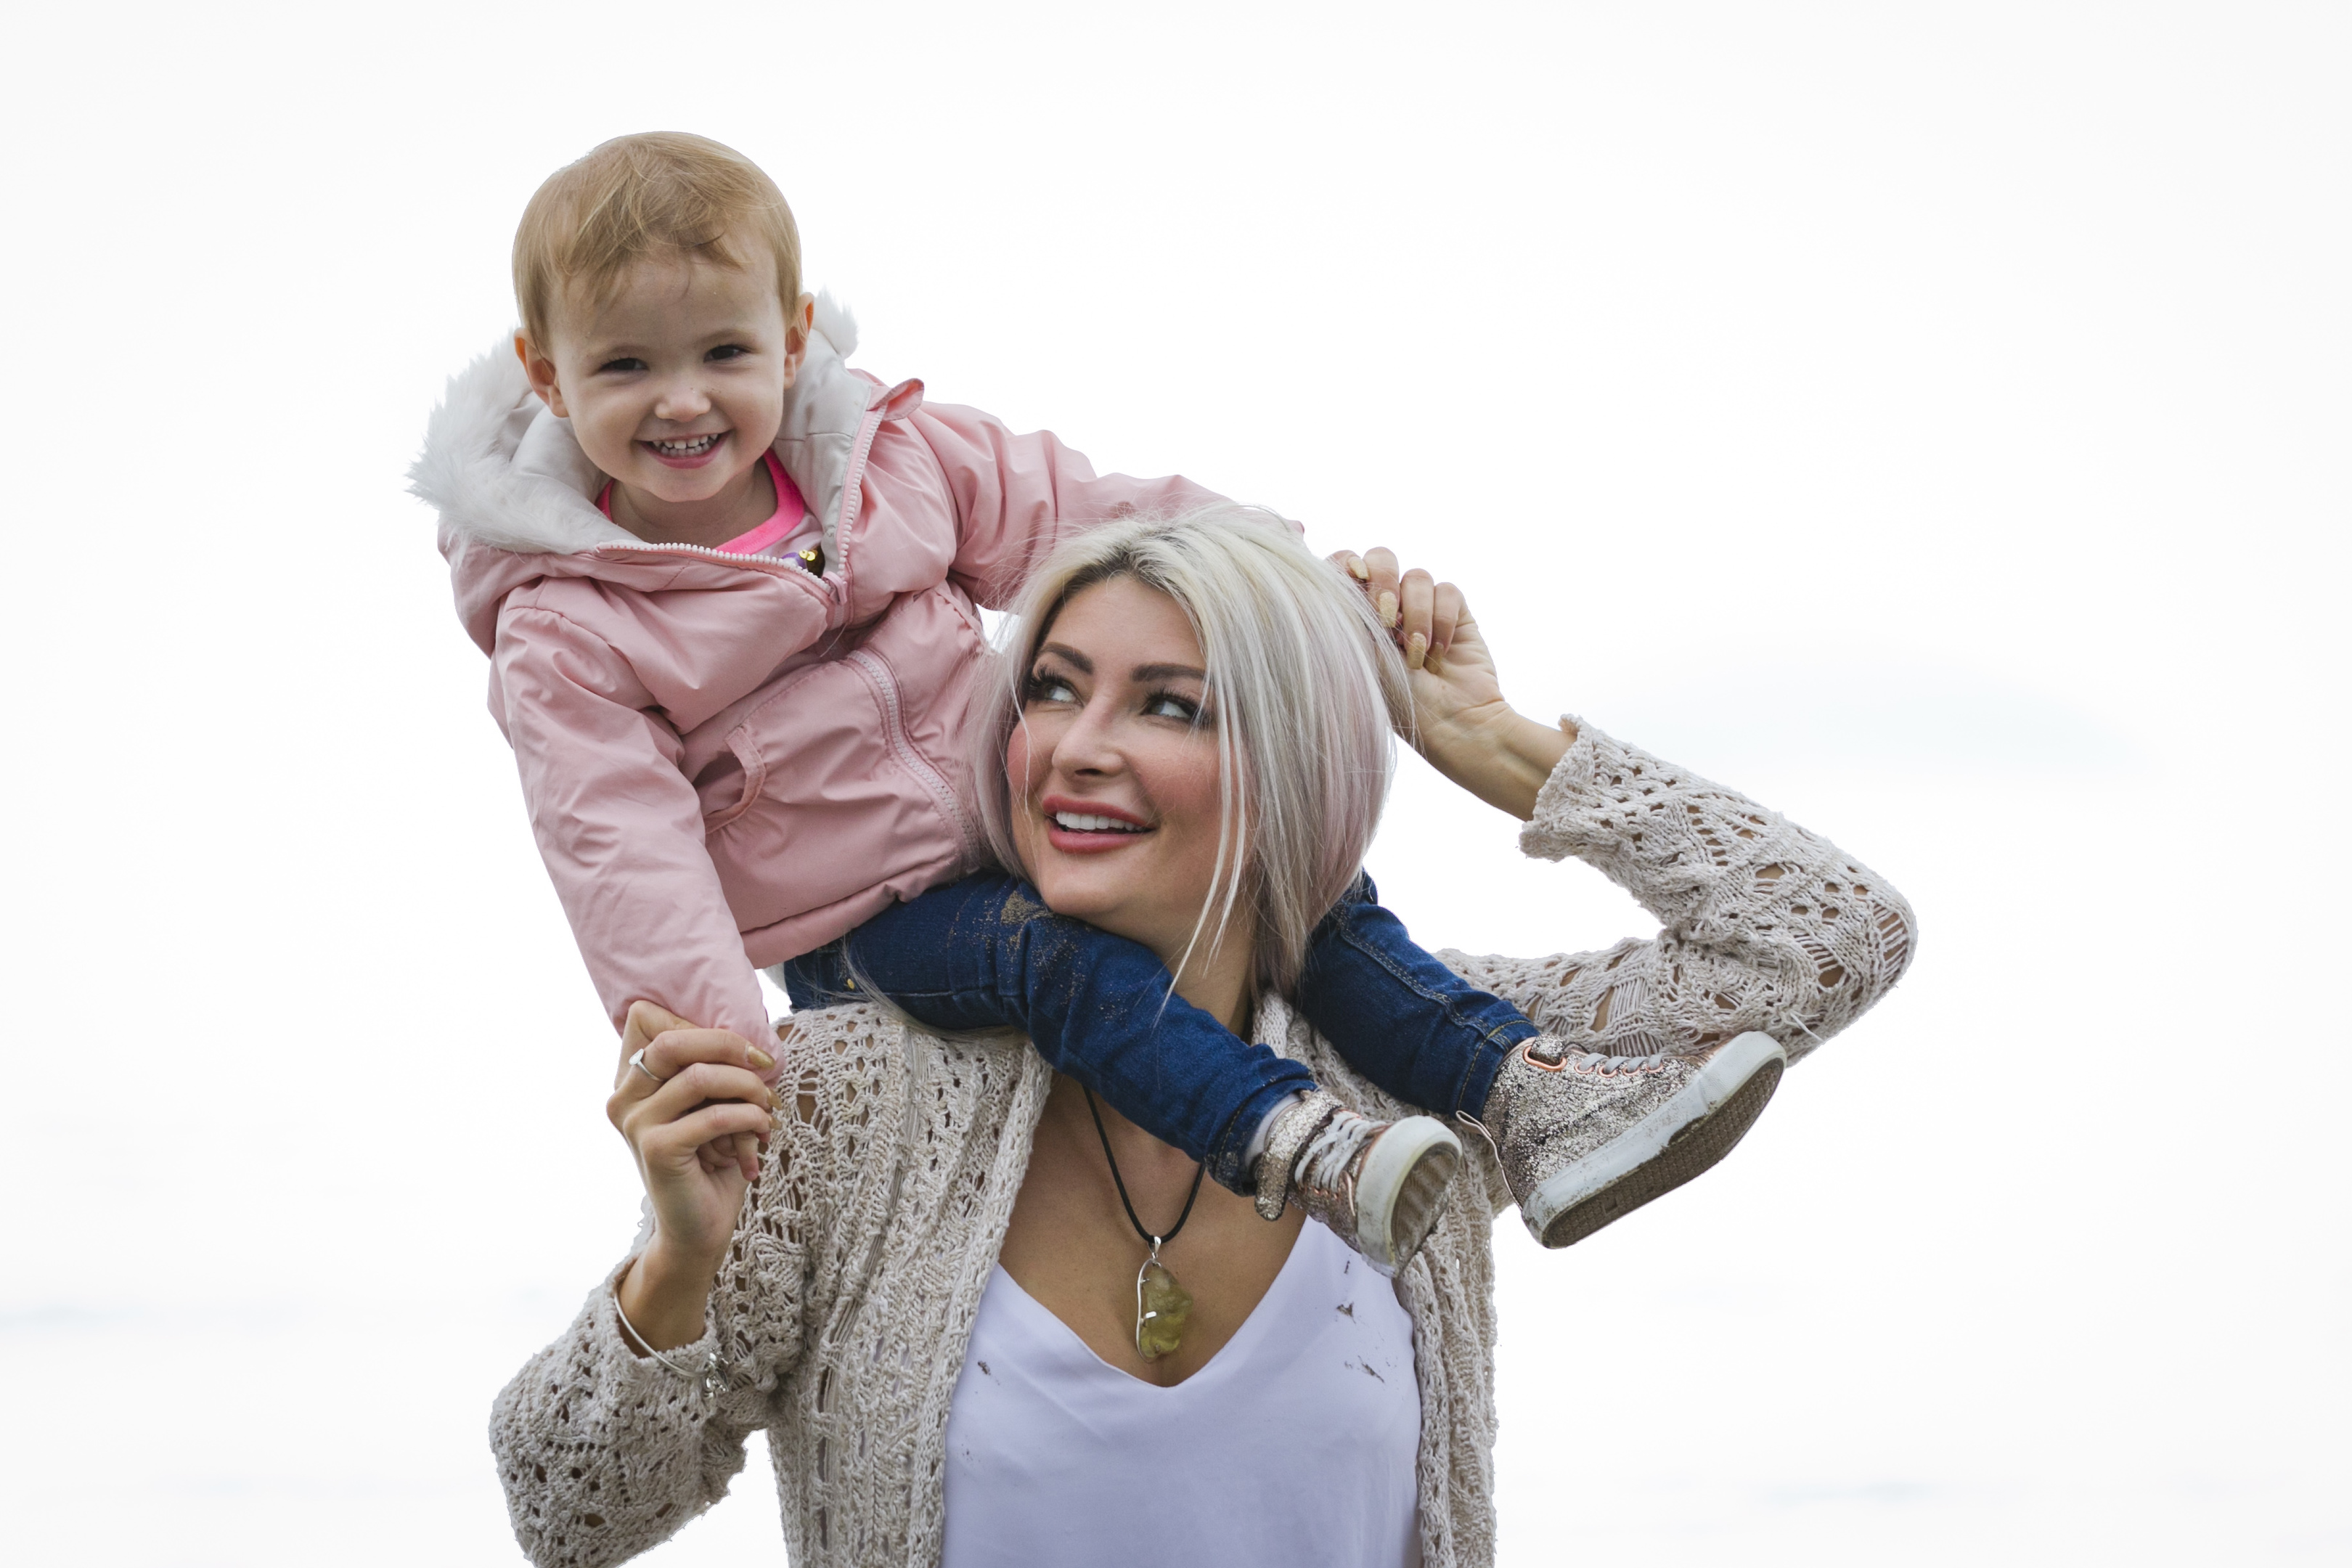 Former model Heather McCartney and daughter Annah (Andrew Cawley / DC Thomson)